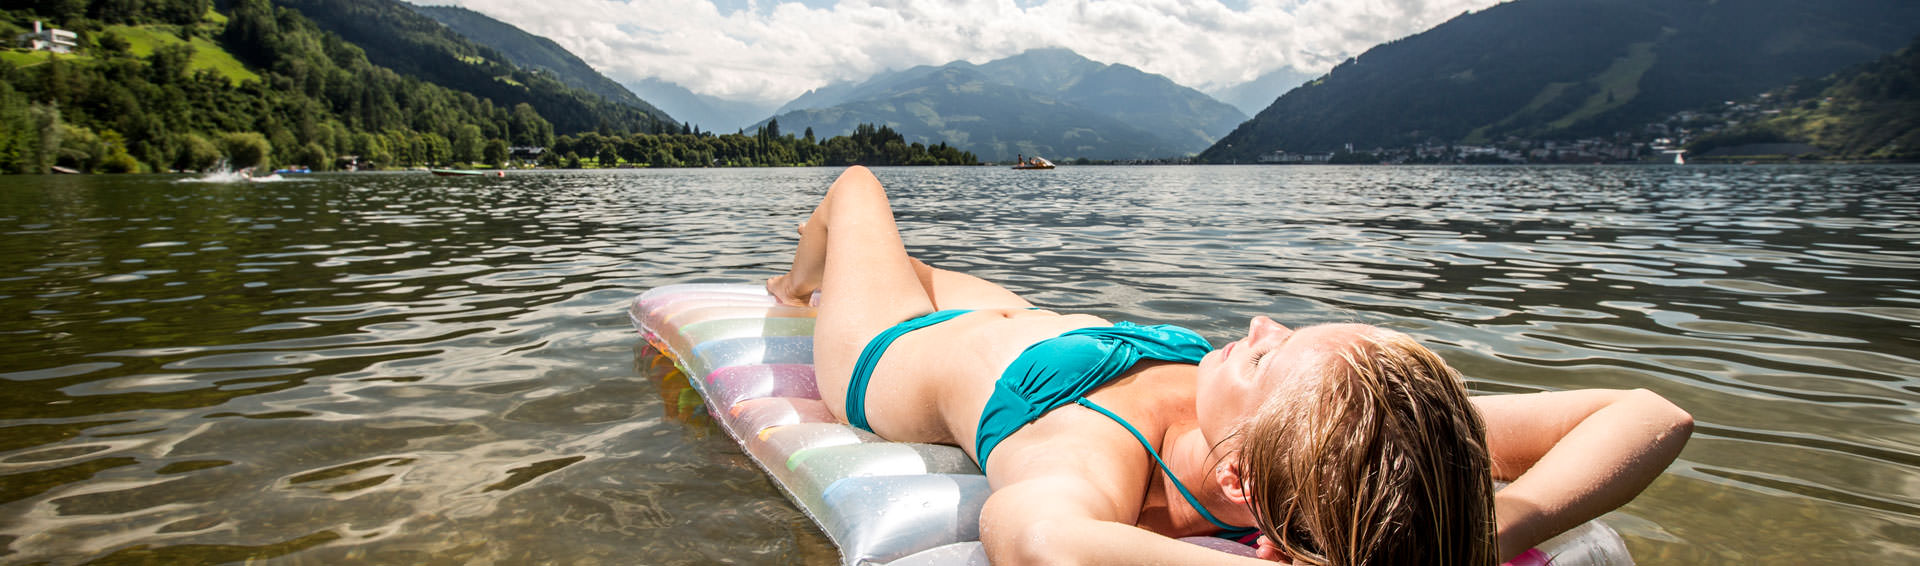 Woman on an air mattress on a lake